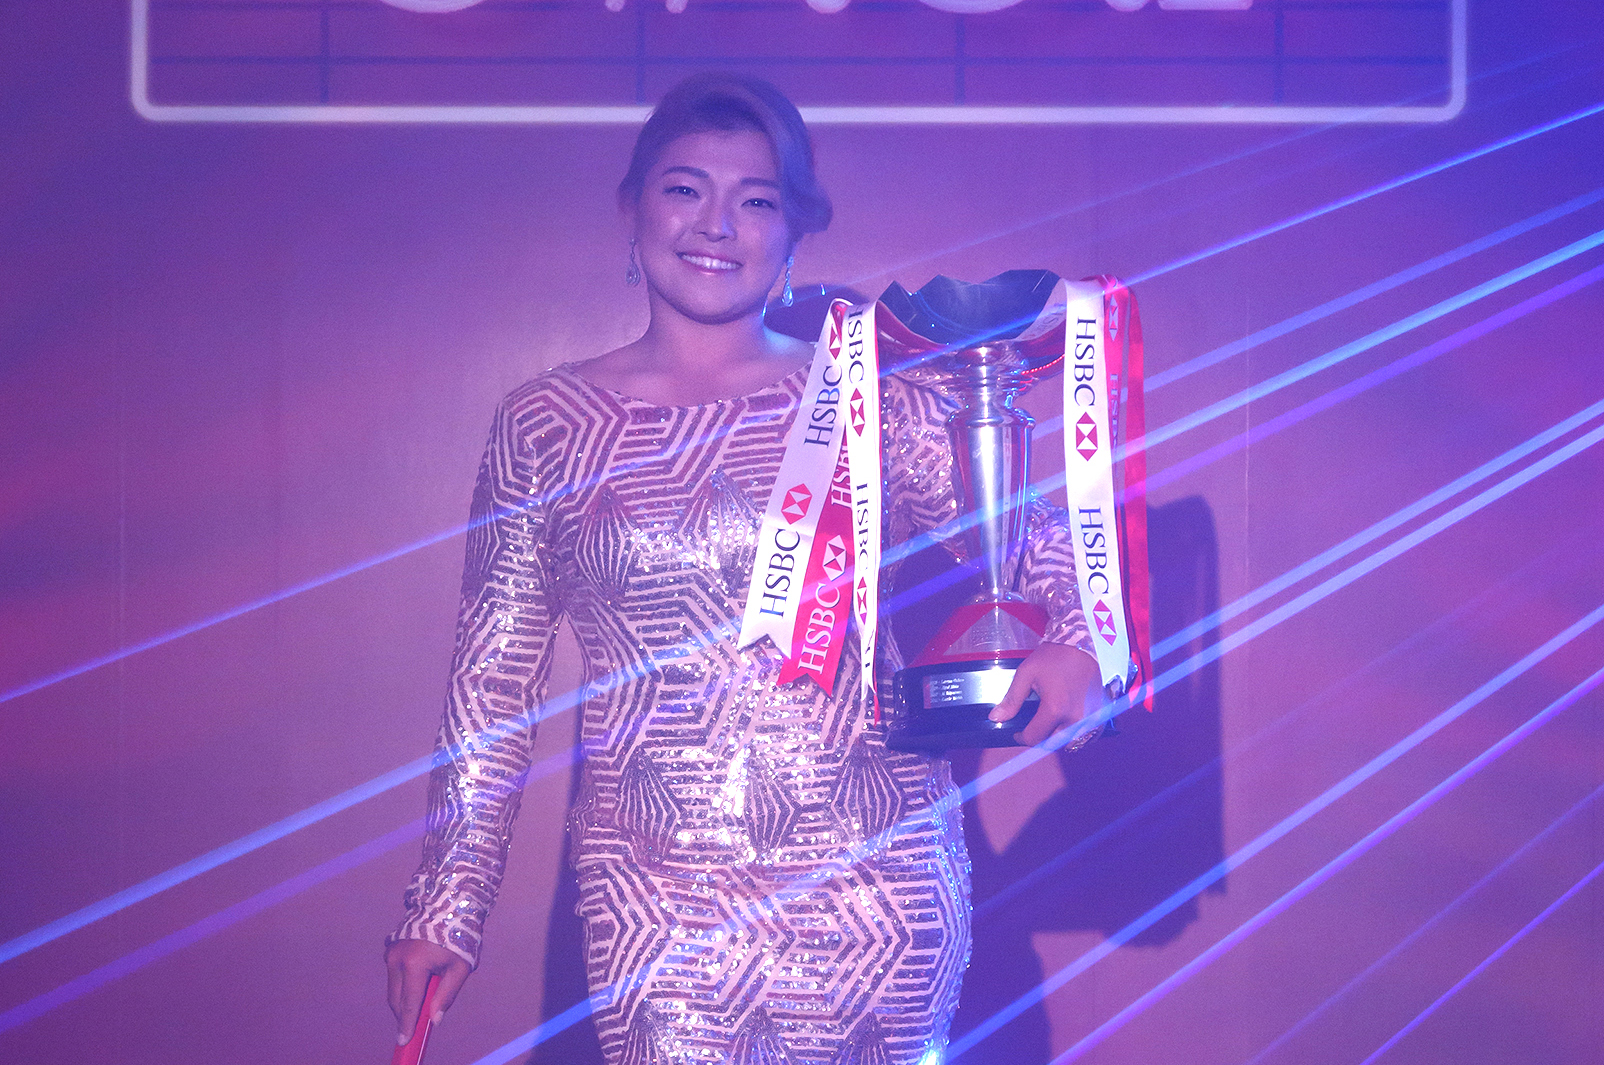 SINGAPORE - March 01 : Ha Na Jang poses with the trophy during a photo call prior to the HSBC Women's Champions at the Sentosa Golf Club on February 27th, 2017 in Singapore.  Players were invited to 'Own The Stage' prior to the tournament, which will be hosted on the new Tanjong Course at Sentosa Golf Club from 2nd to 5th March, the 10th Anniversary of the HSBC Women's Champions. (photo by Russel Wong/HSBC via Getty Images)